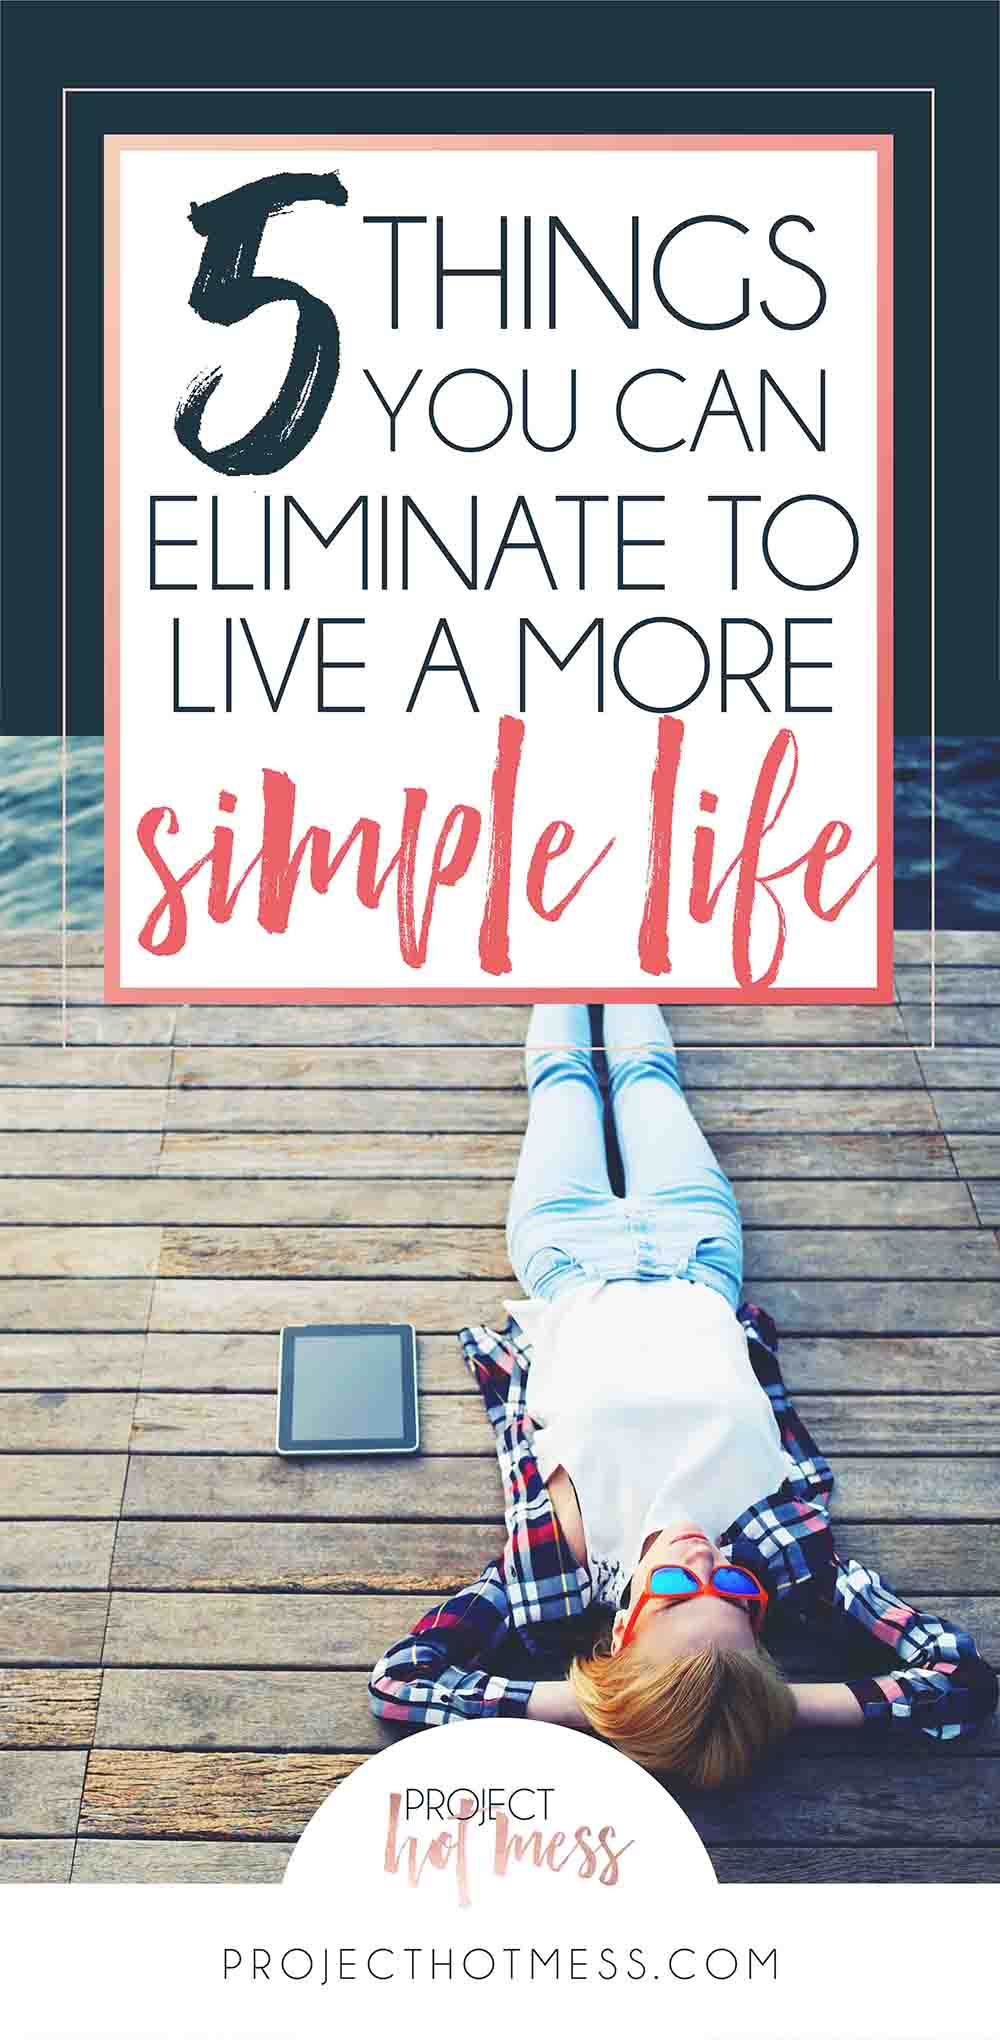 So many people want to live a more simple life, especially given how hectic our lives seem to be. This is the perfect start to living a more simple way, clearing from you life things that no longer work from you and some basic decluttering that won't take you months to do but will make all the difference. You don't have to have a minimalist lifestyle to live a more simple life.